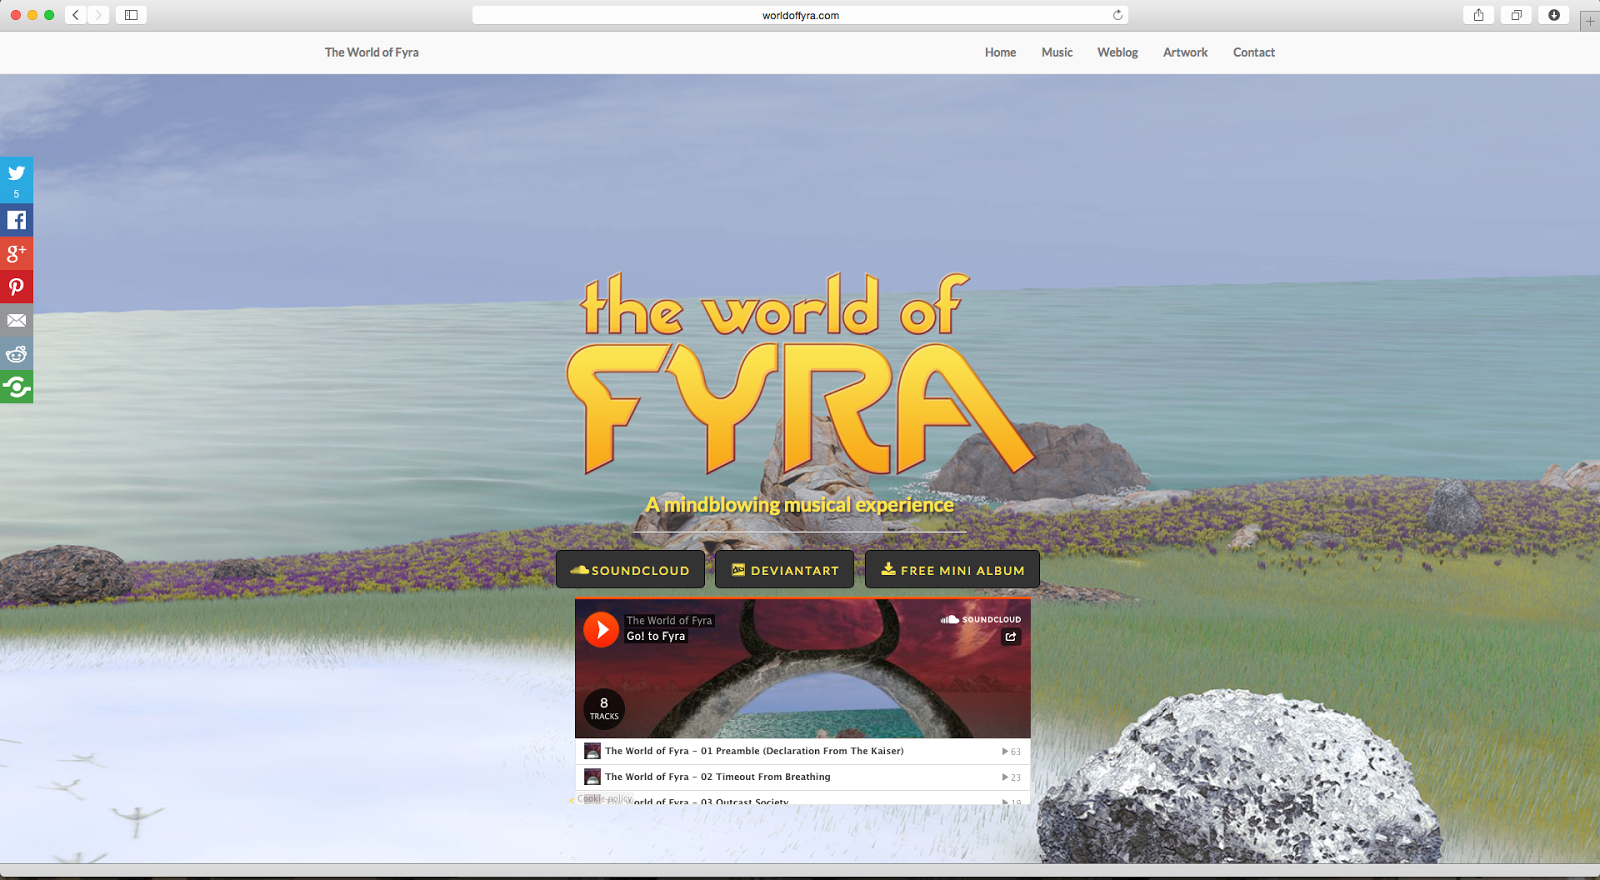 The World of Fyra